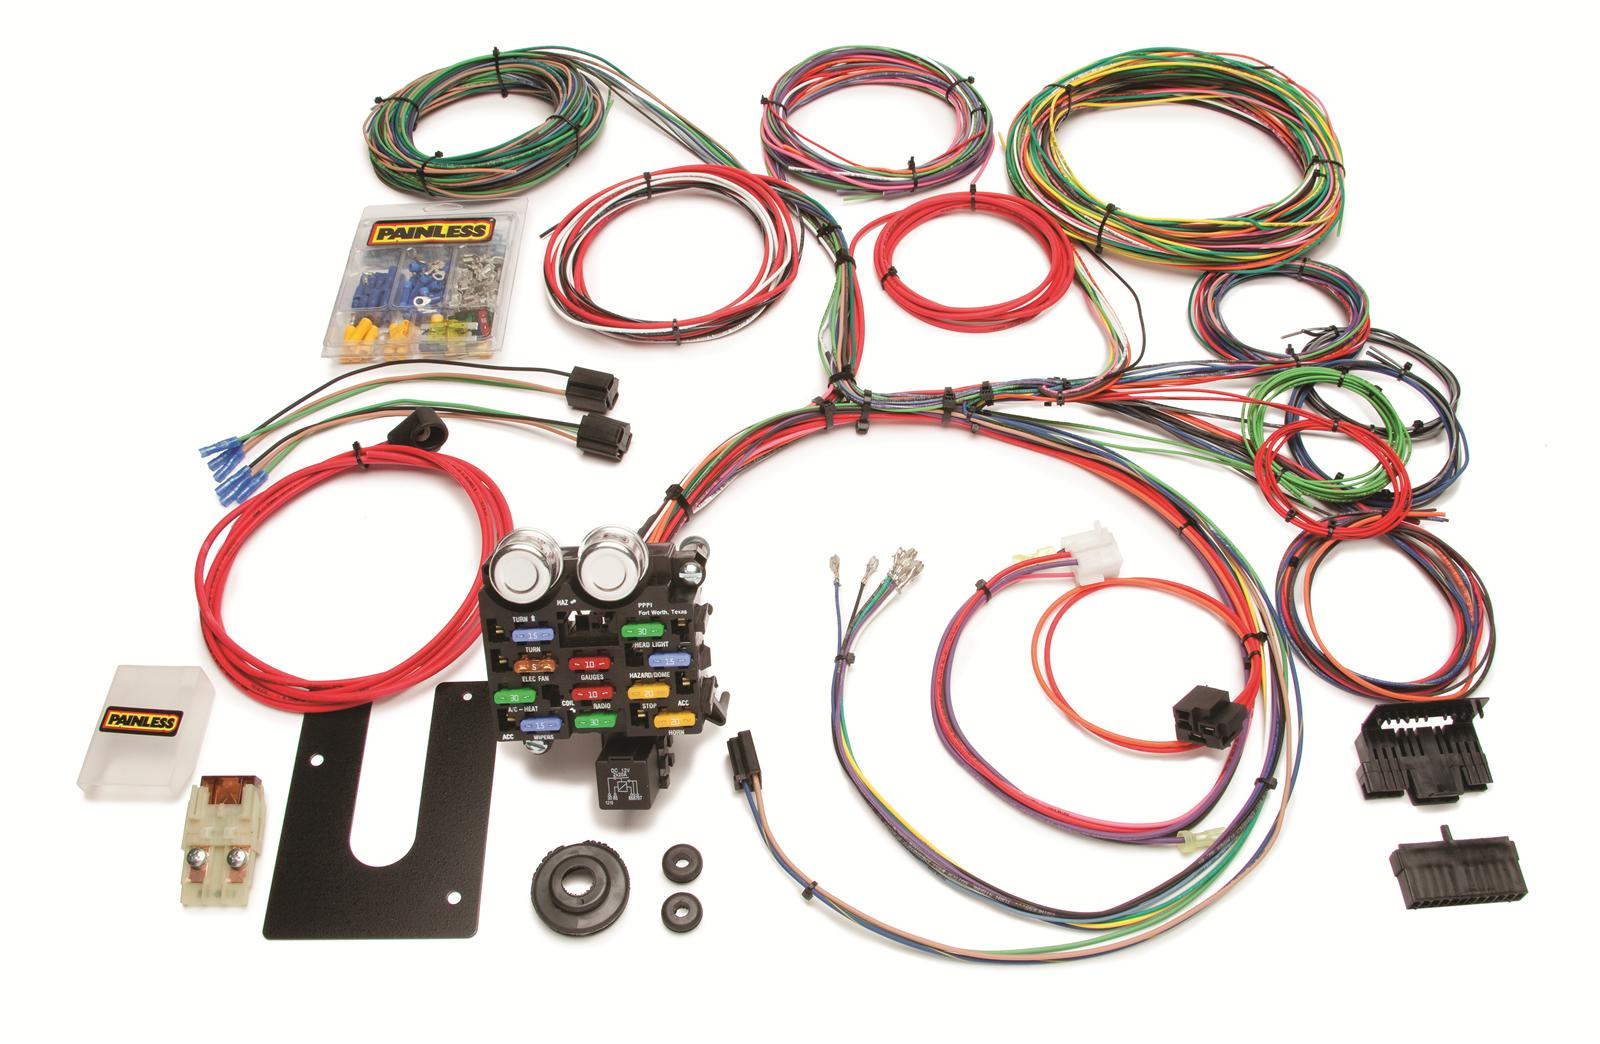 painless performance 21 circuit universal harnesses 10101 free